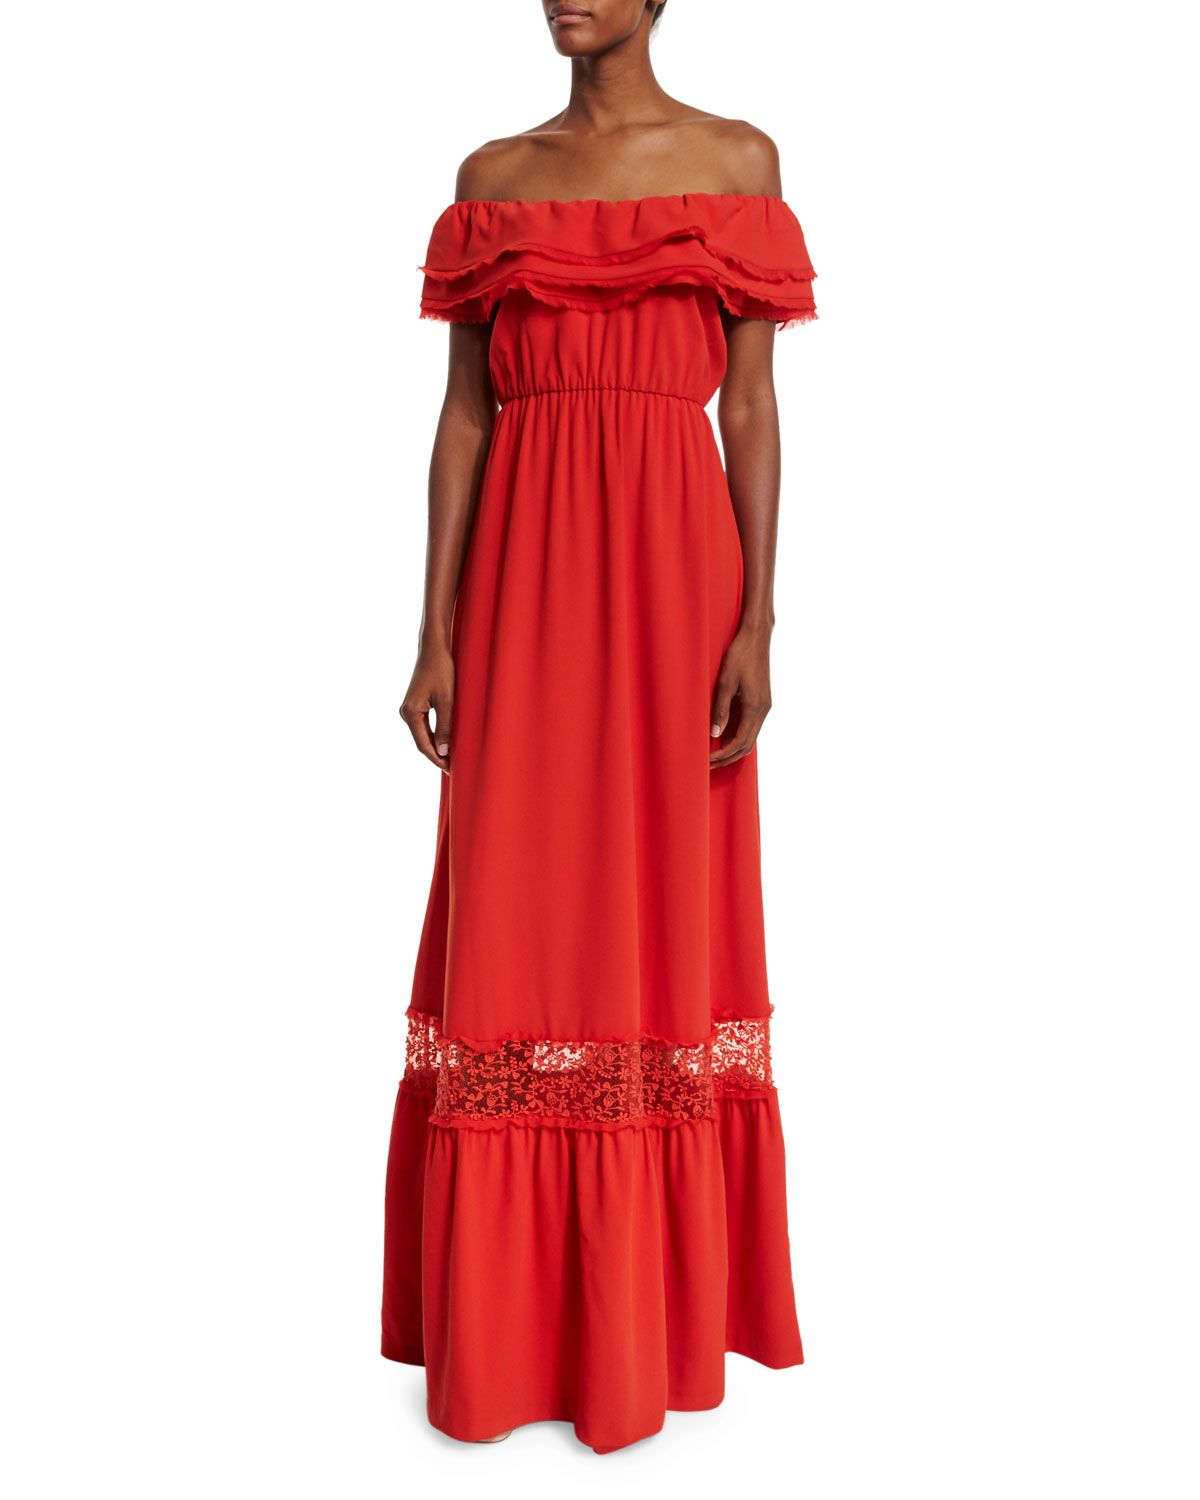 Cheri lacetrim maxi dress light red size alice olivia